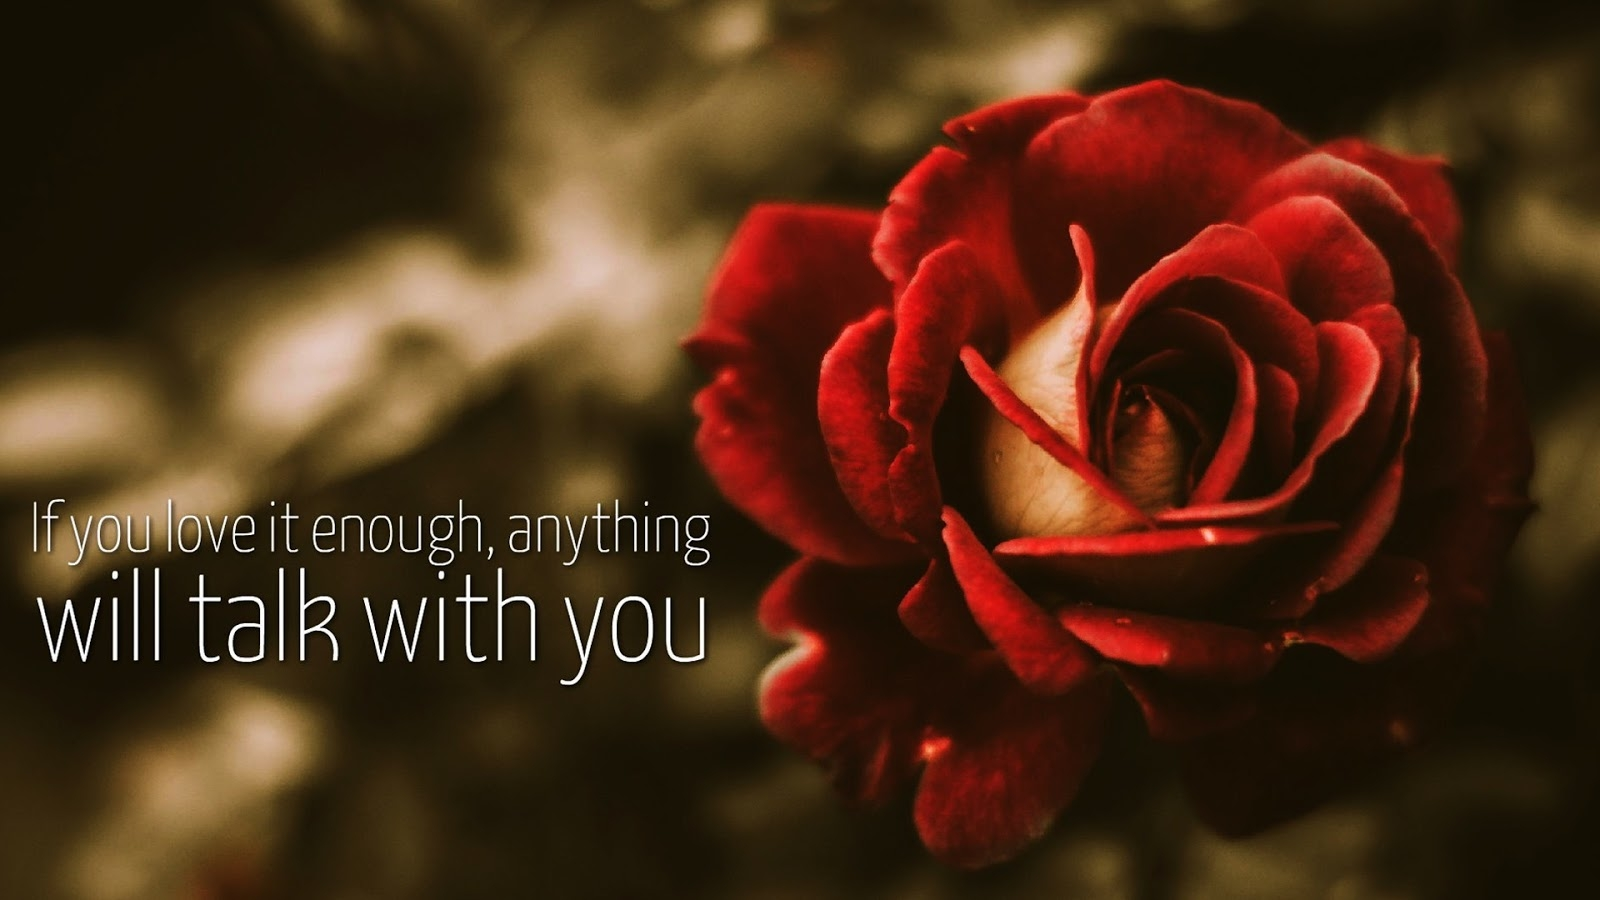 best-images-of-love-download-HD-Love-Images-With-Love-Quotes-Images-And-Love-Couple-Images-Best-wallpaper-wpc9002835